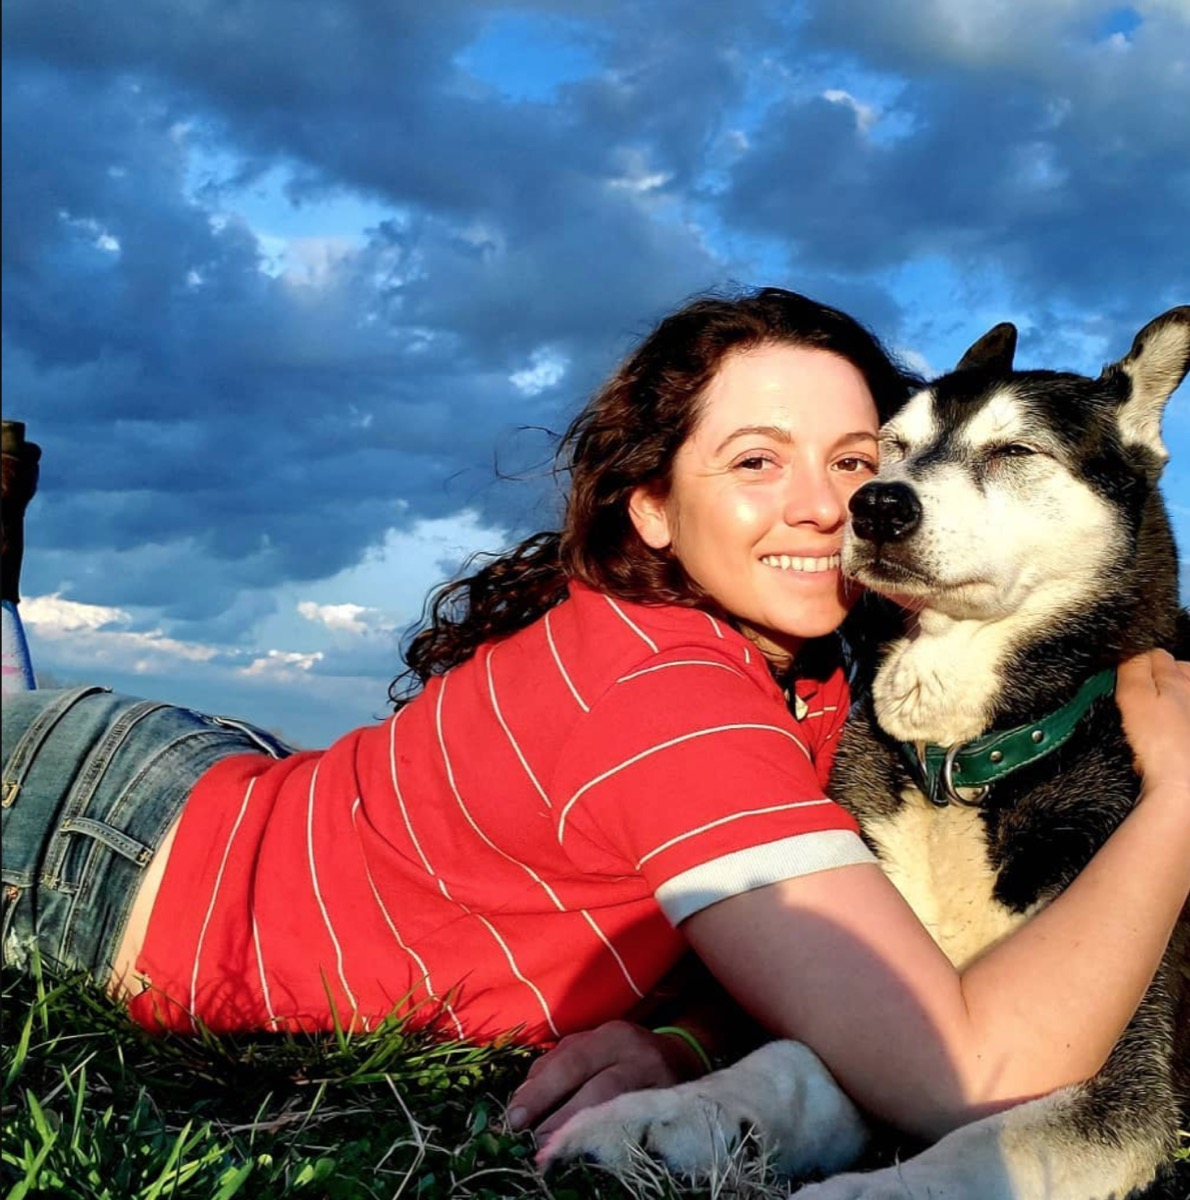 Mackenzie Rosman lying down in a red shirt hugging a black and white dog outdoors